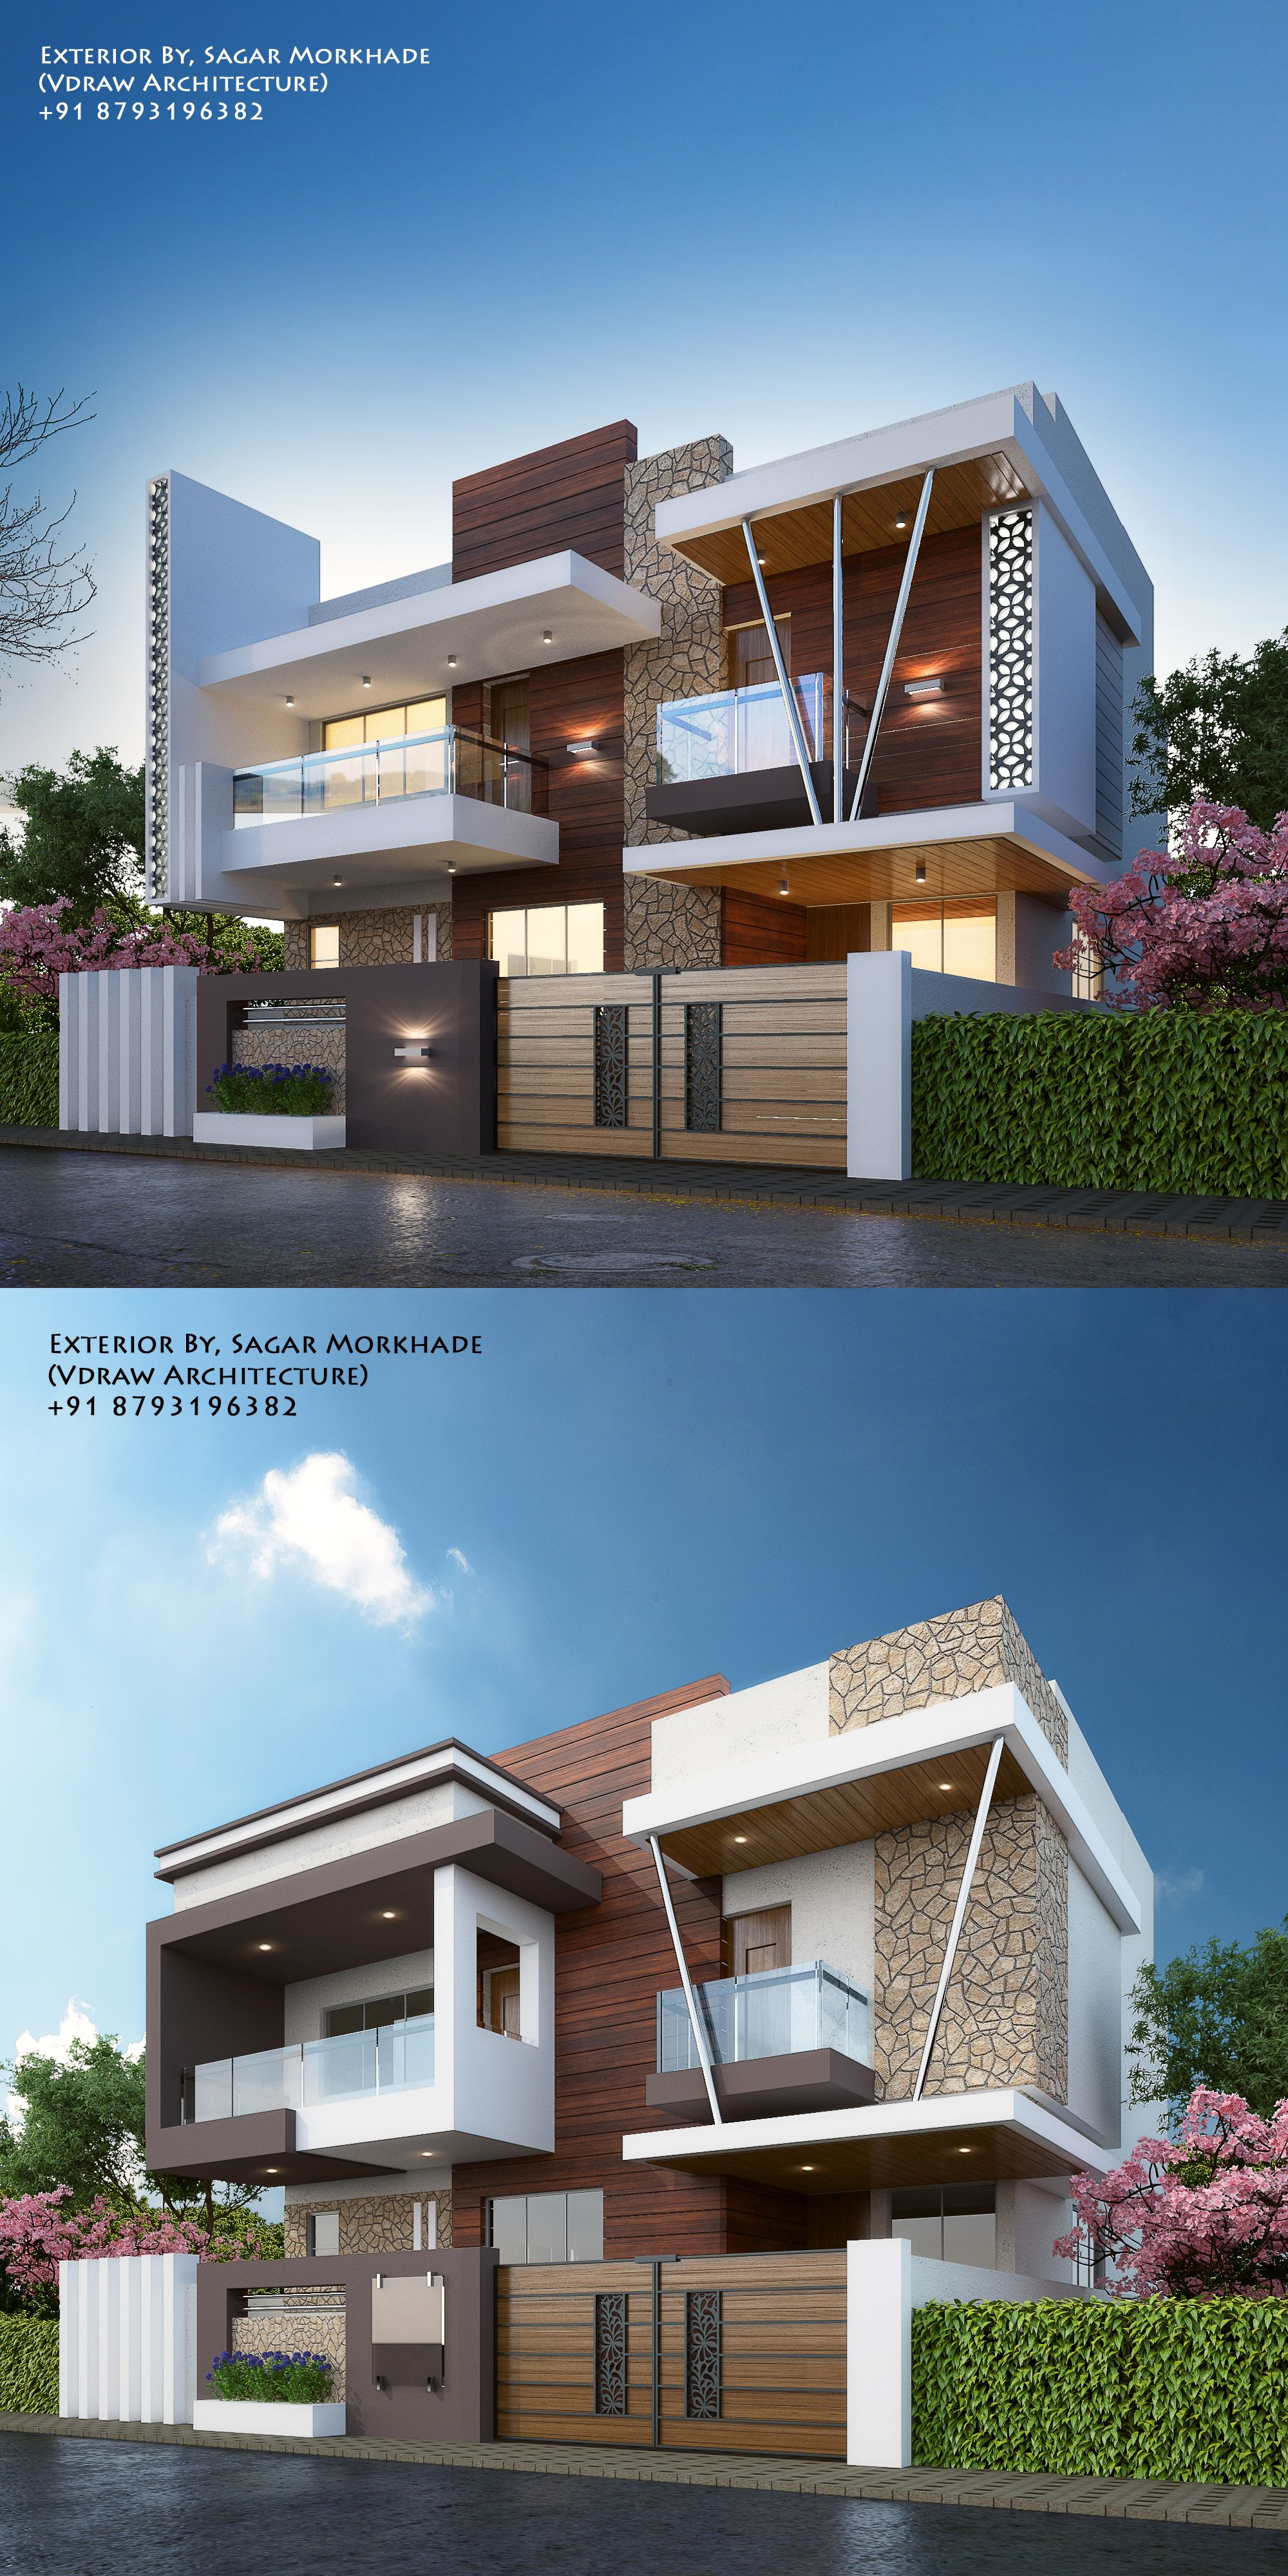 Modern house bungalow exterior by argar morkhade vdraw architecture also download catalogue dream pinterest design rh